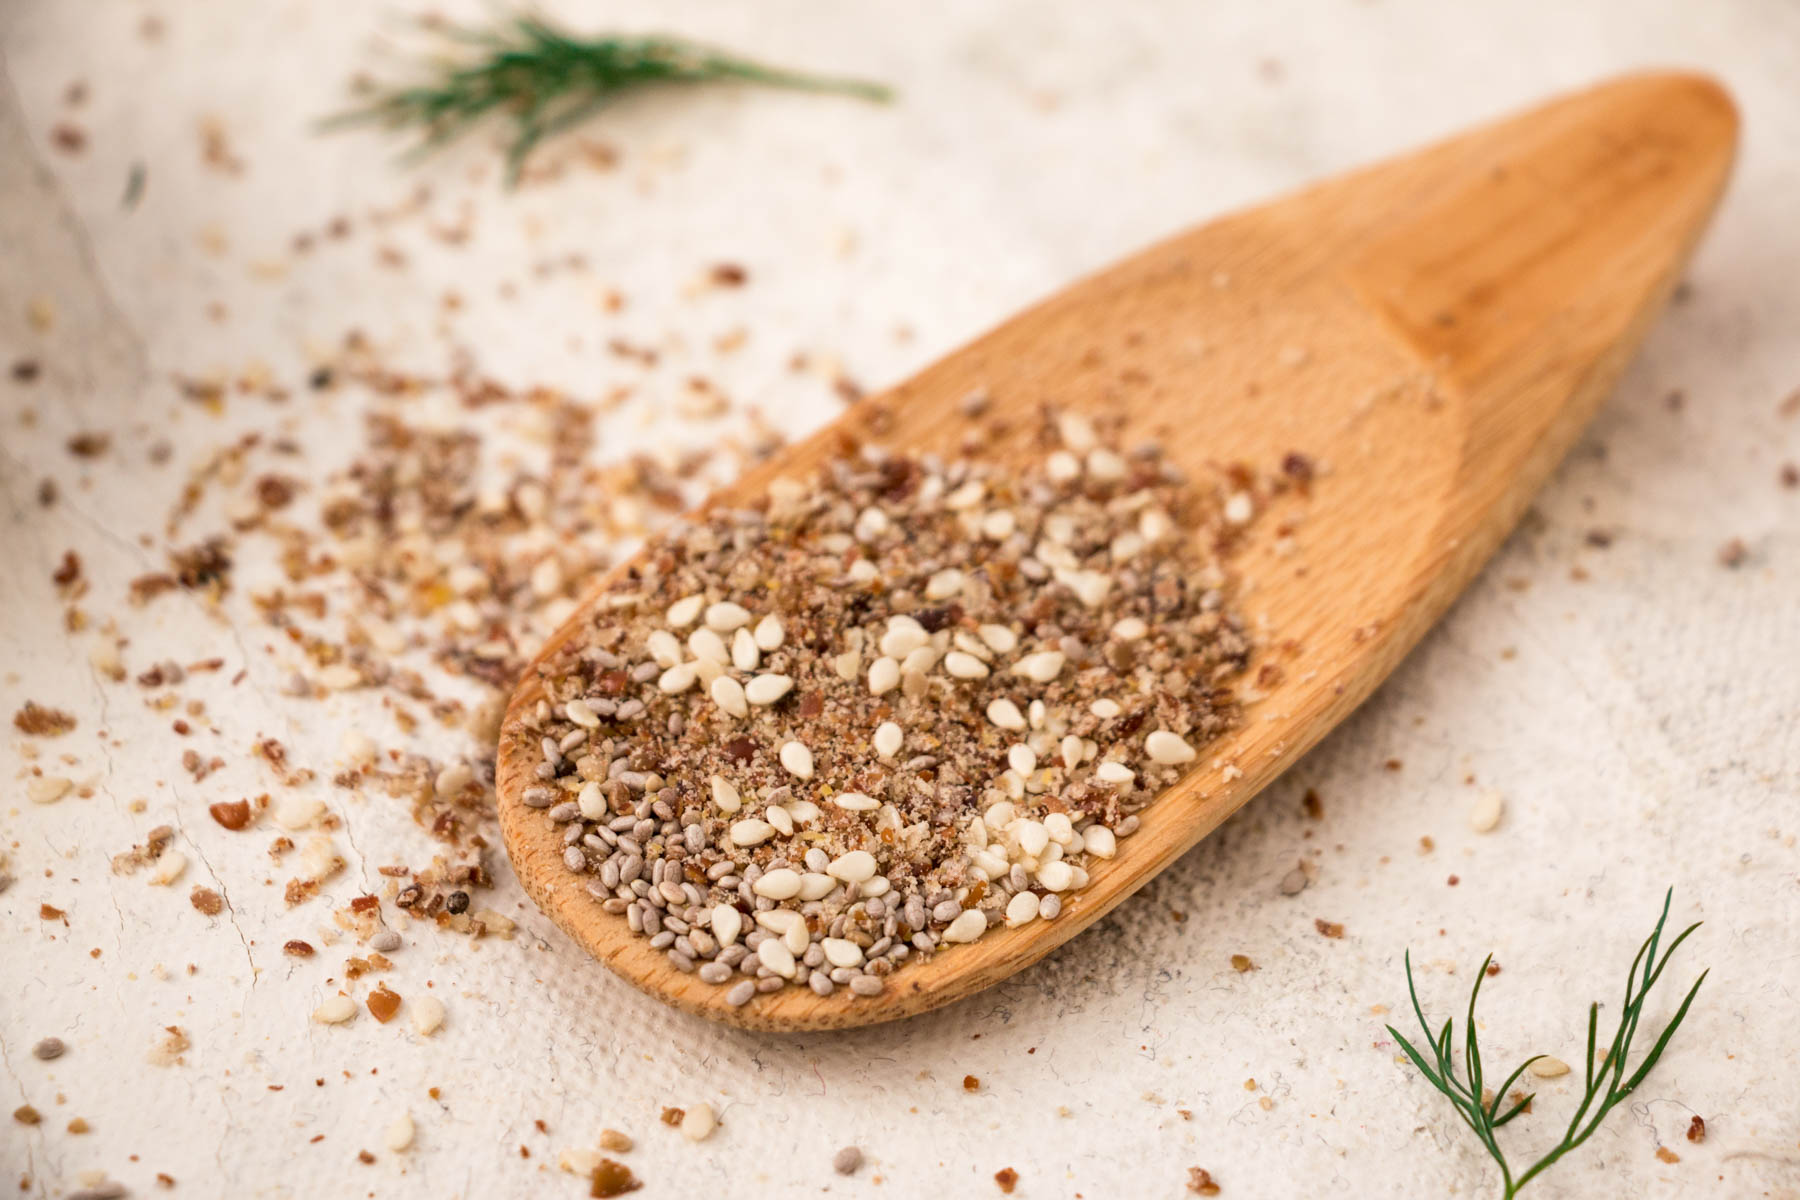 Nuts and seeds dressing - LSA, sesame seeds, chia seeds combine with macadamia oil